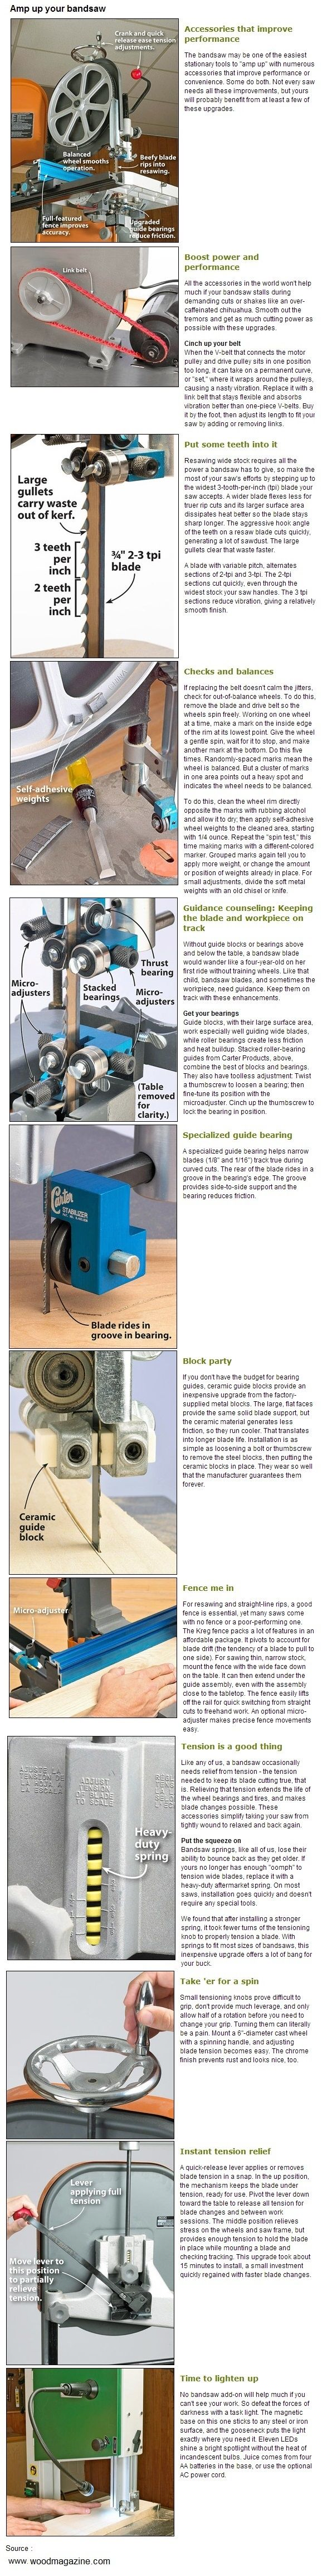 Amp up your bandsaw   WoodworkerZ.com